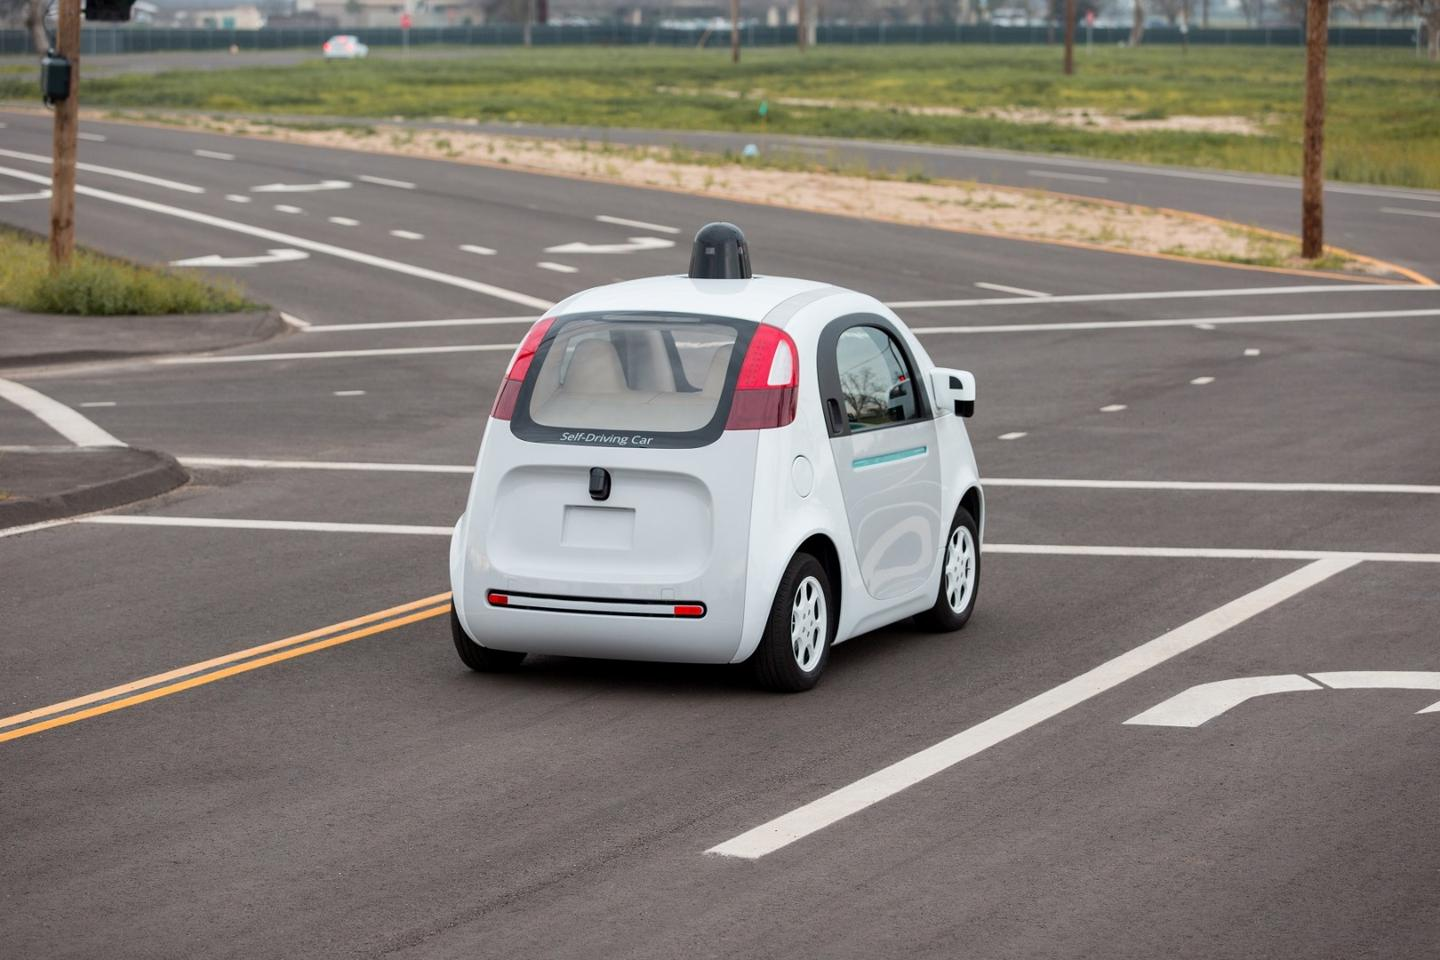 Cars designed to be completely driverless, like that being tested by Google, are to be initially excluded from being granted licenses